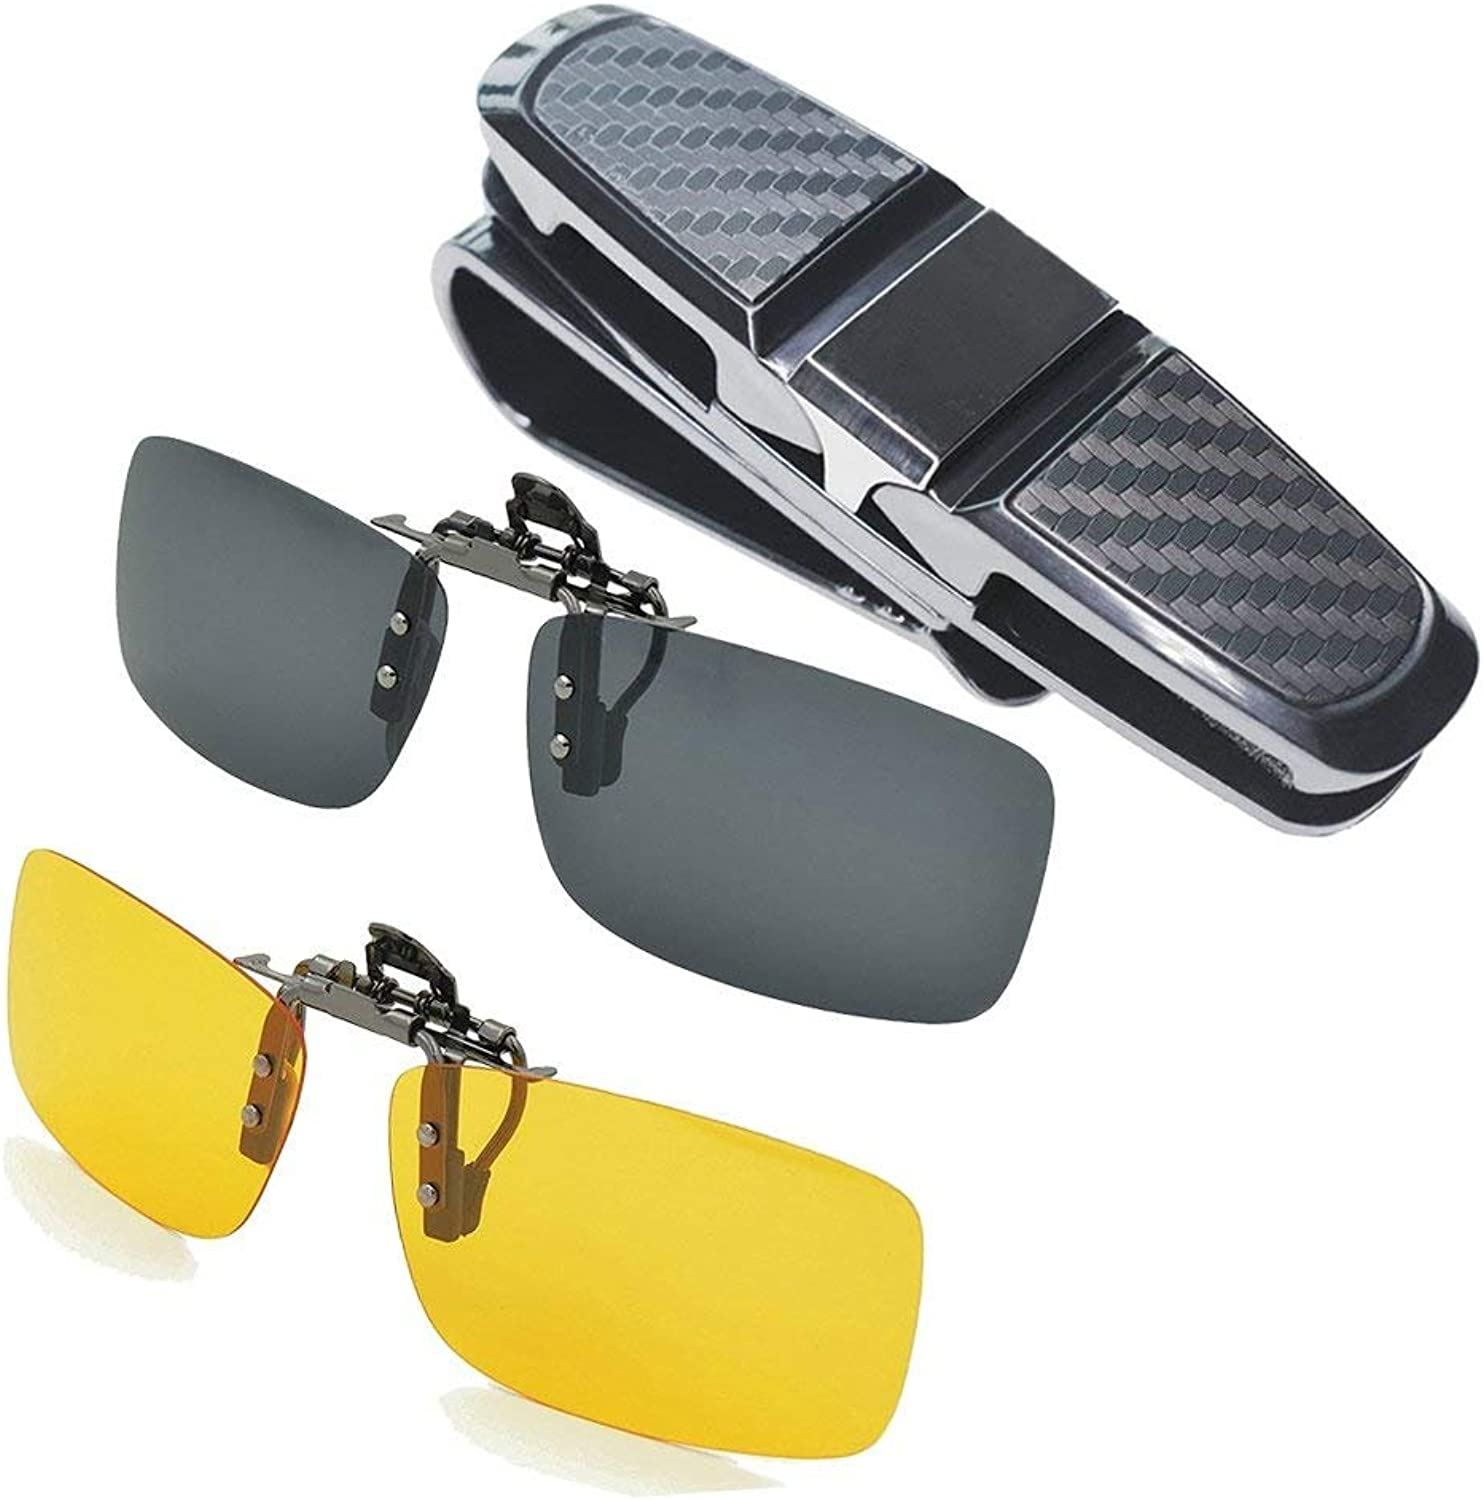 TNSO Polarized Clipon Sunglasses & Car Glasses Holder for Sun Visor by, 2Piece Unisex Polarized Clip on Glasses for Driving and More (Black and Yellow)